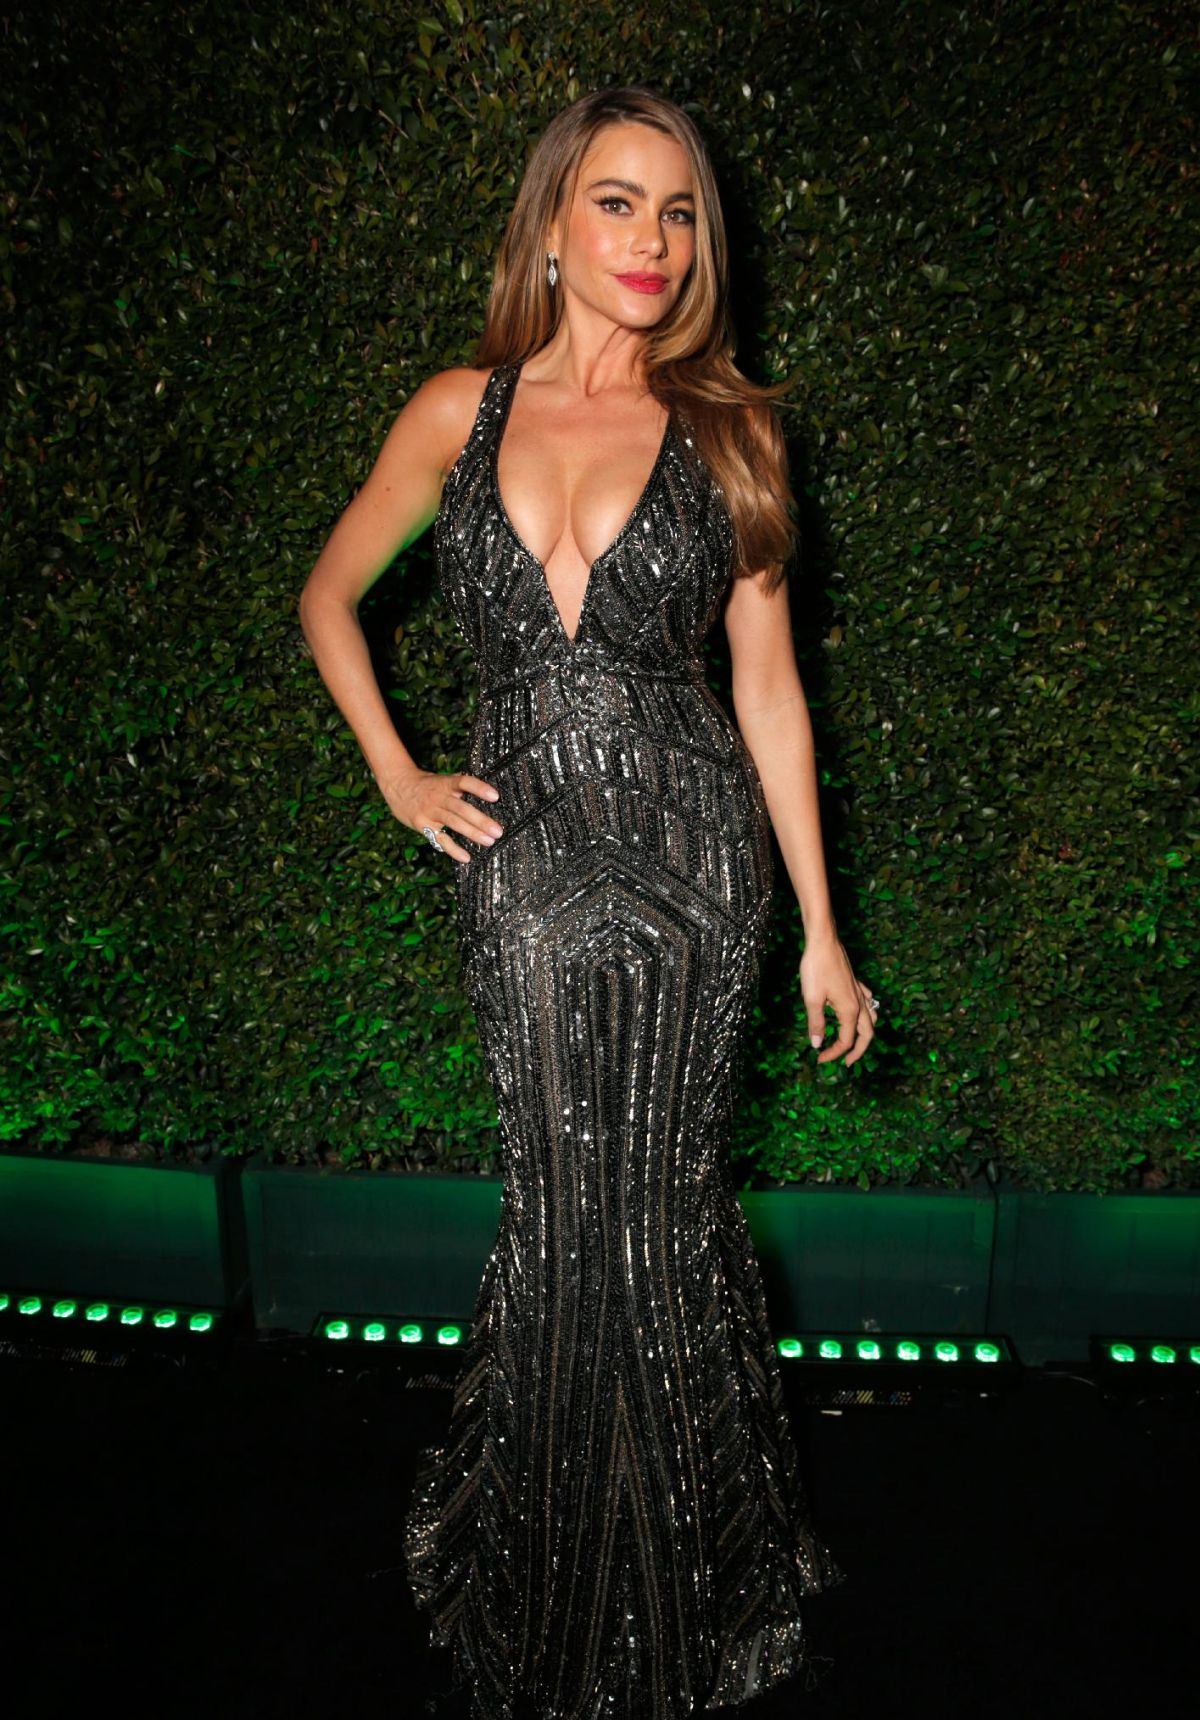 sofia vergara dating 2014 Sofia vergara is known for playing as well as a fragrance and jewelry collection in 2014 personal life sofia vergara was married to vergara began dating.